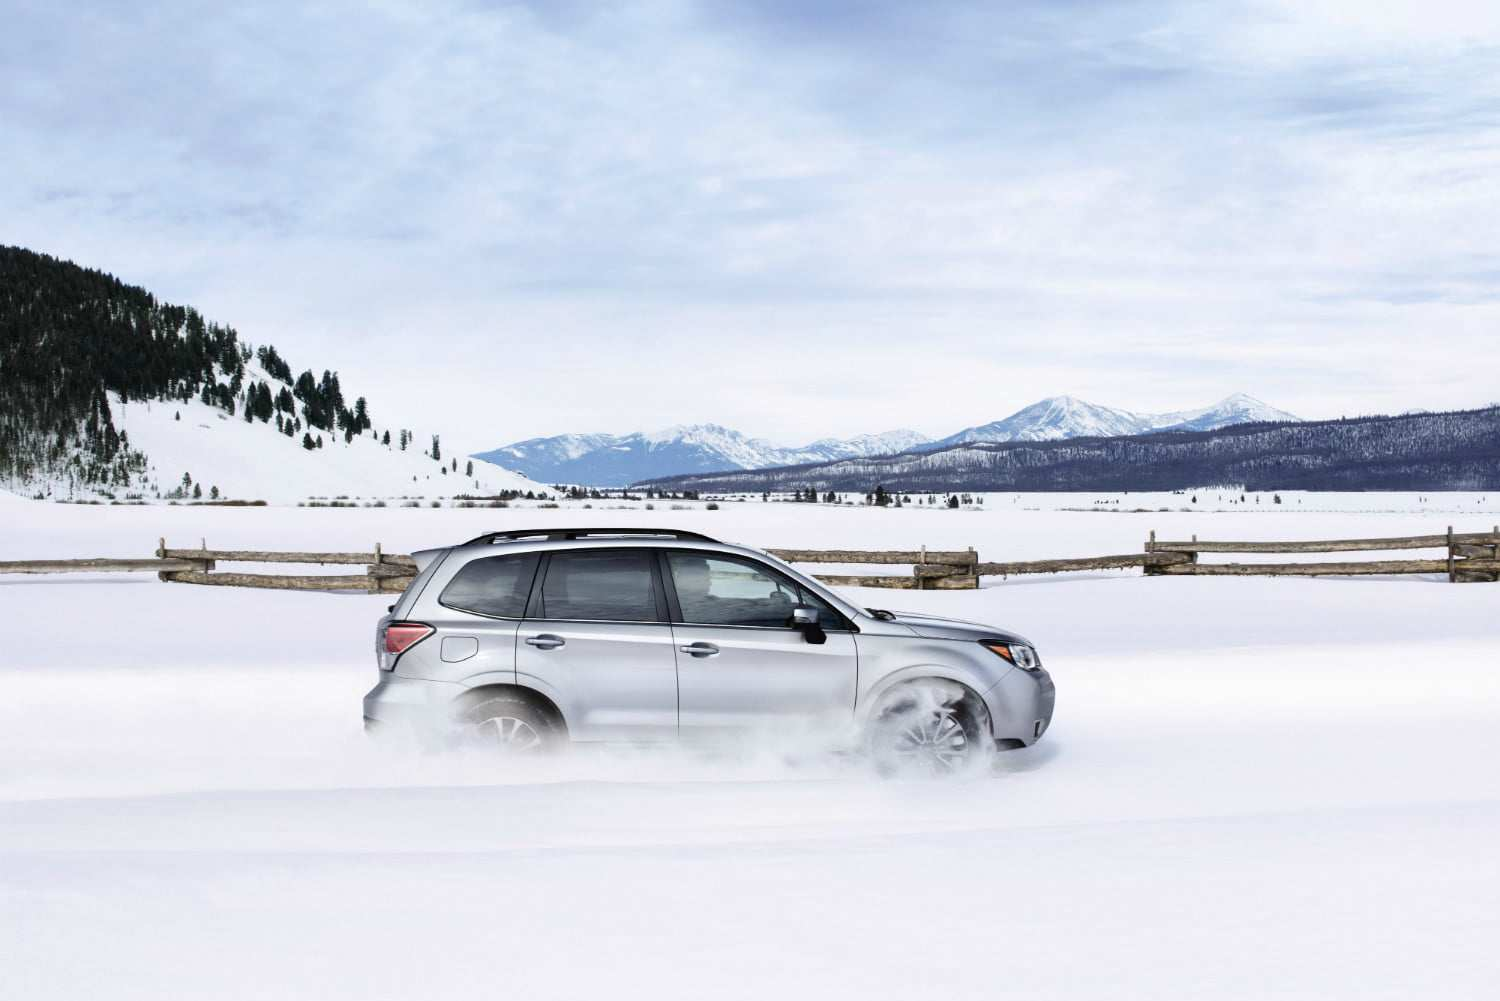 53 All New 2020 Subaru Forester Towing Capacity First Drive with 2020 Subaru Forester Towing Capacity